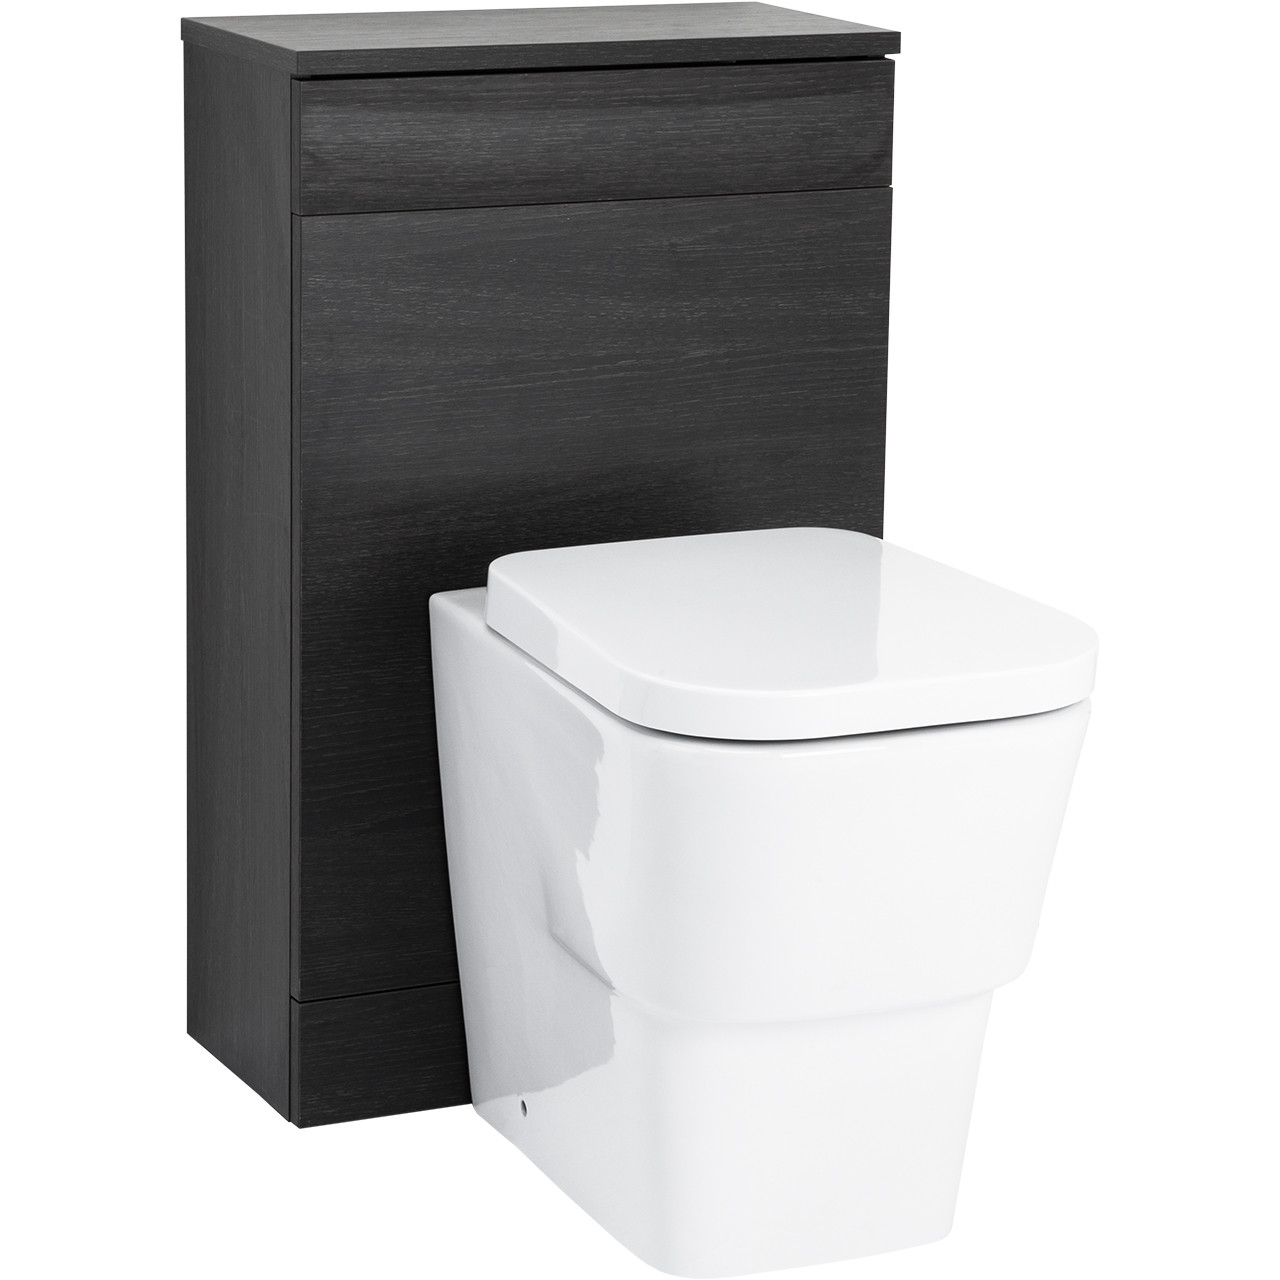 Napoli Black Oak 500 WC Unit